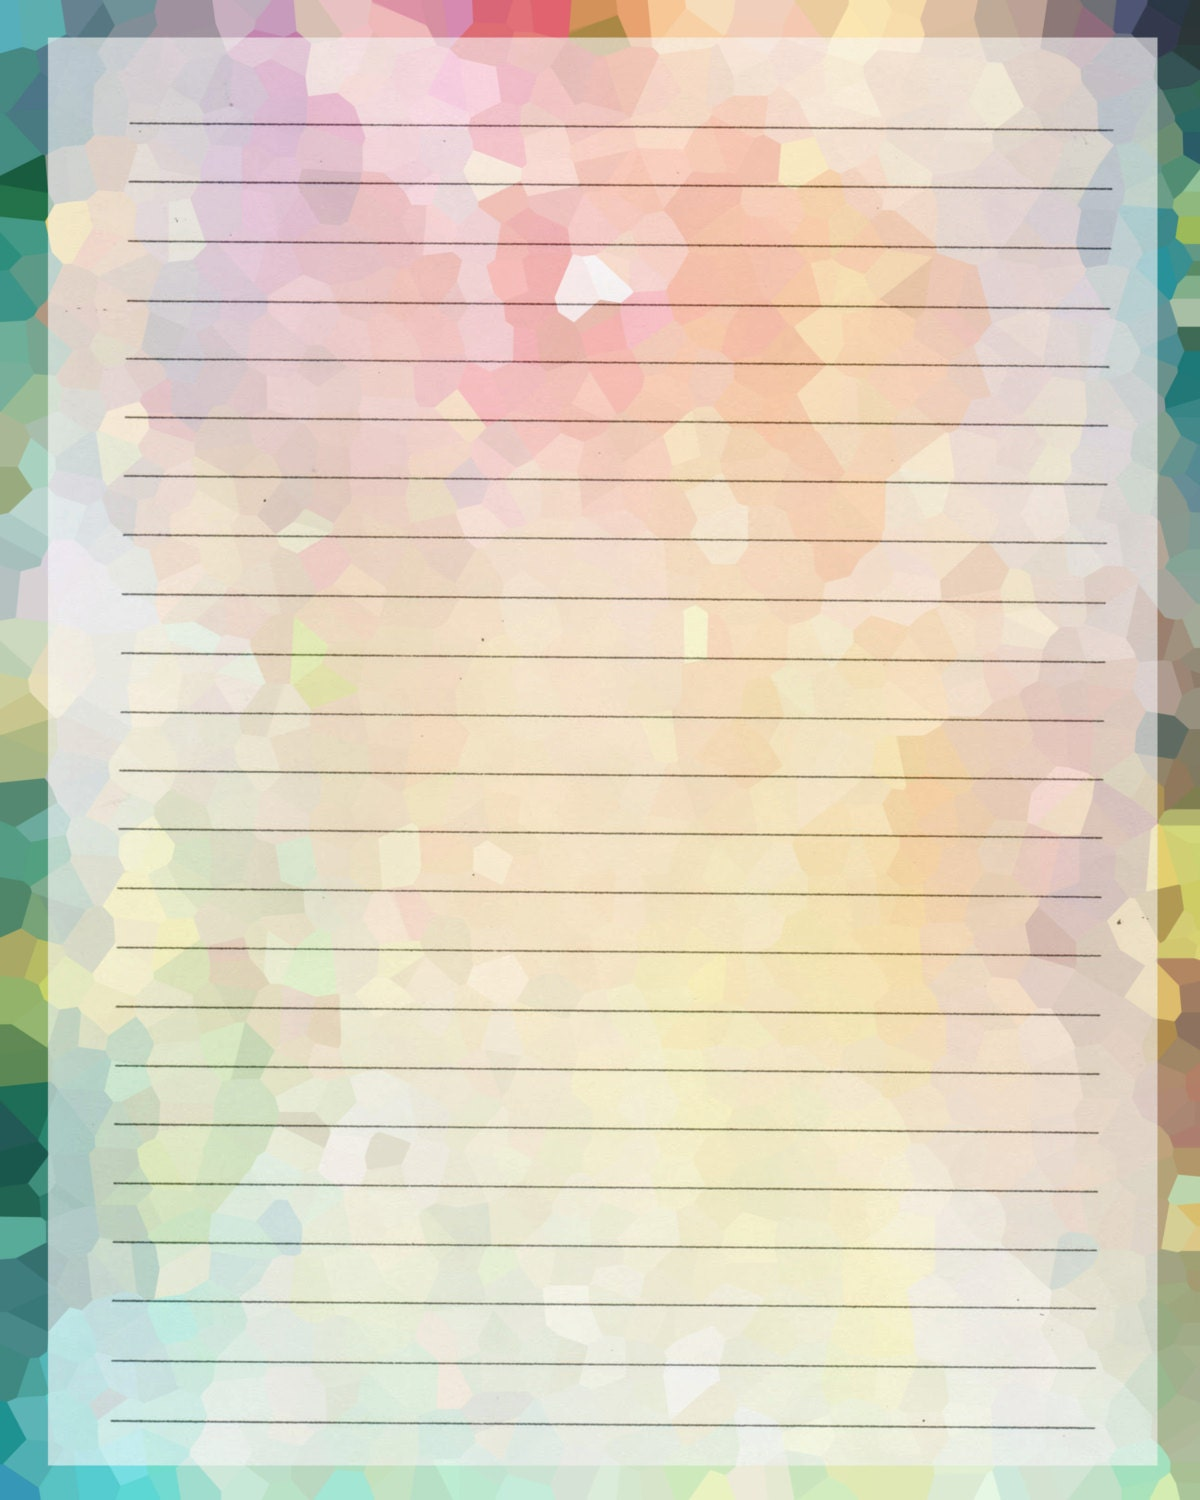 It's just an image of Légend Free Printable Journal Pages Lined